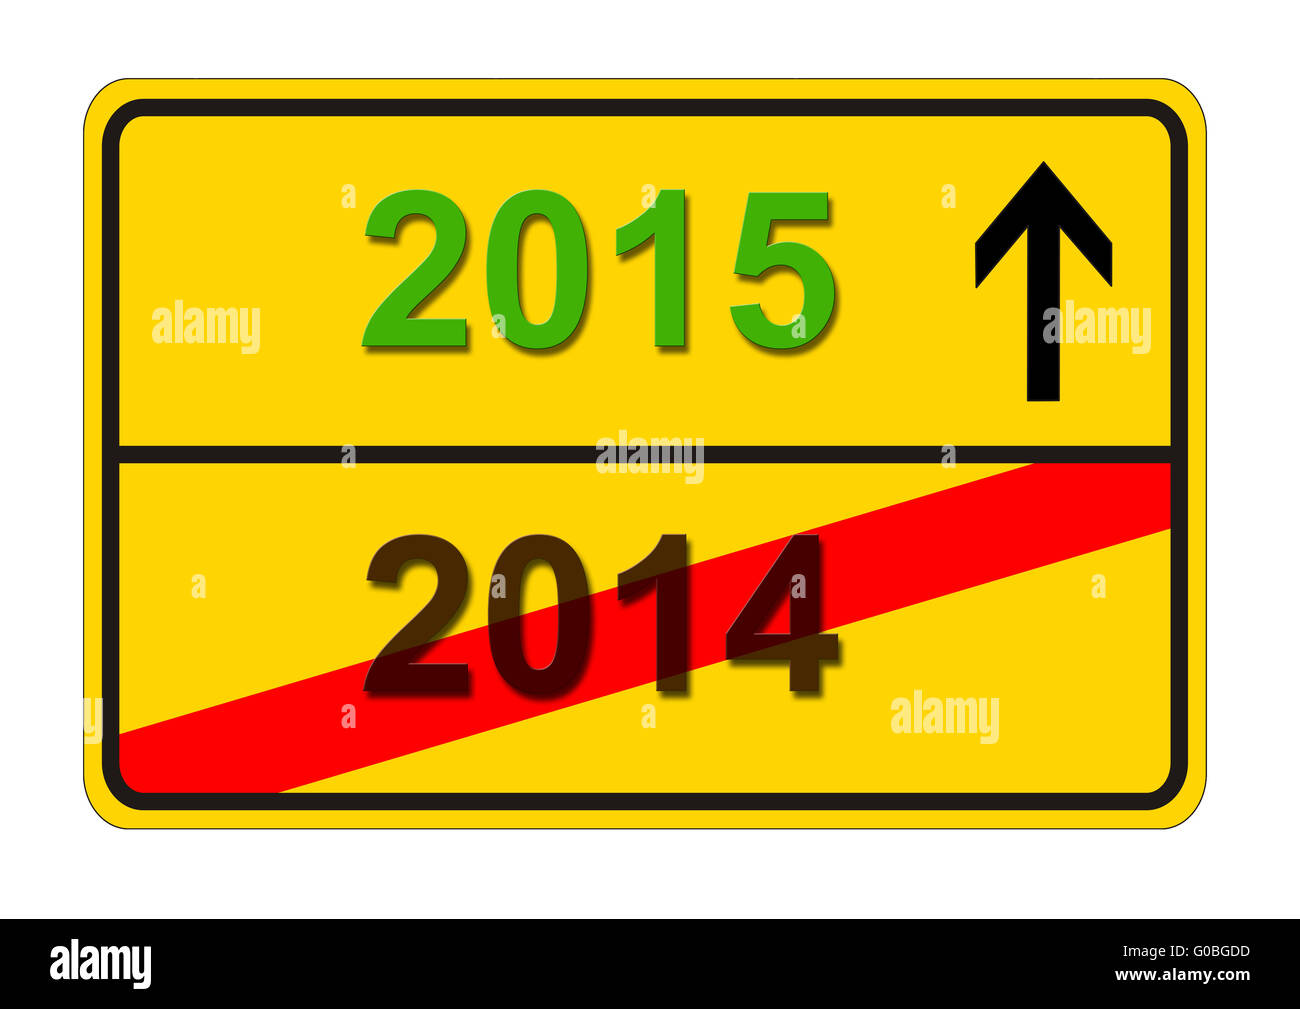 traffic sign shows change from year 2014 to 2015 - Stock Image